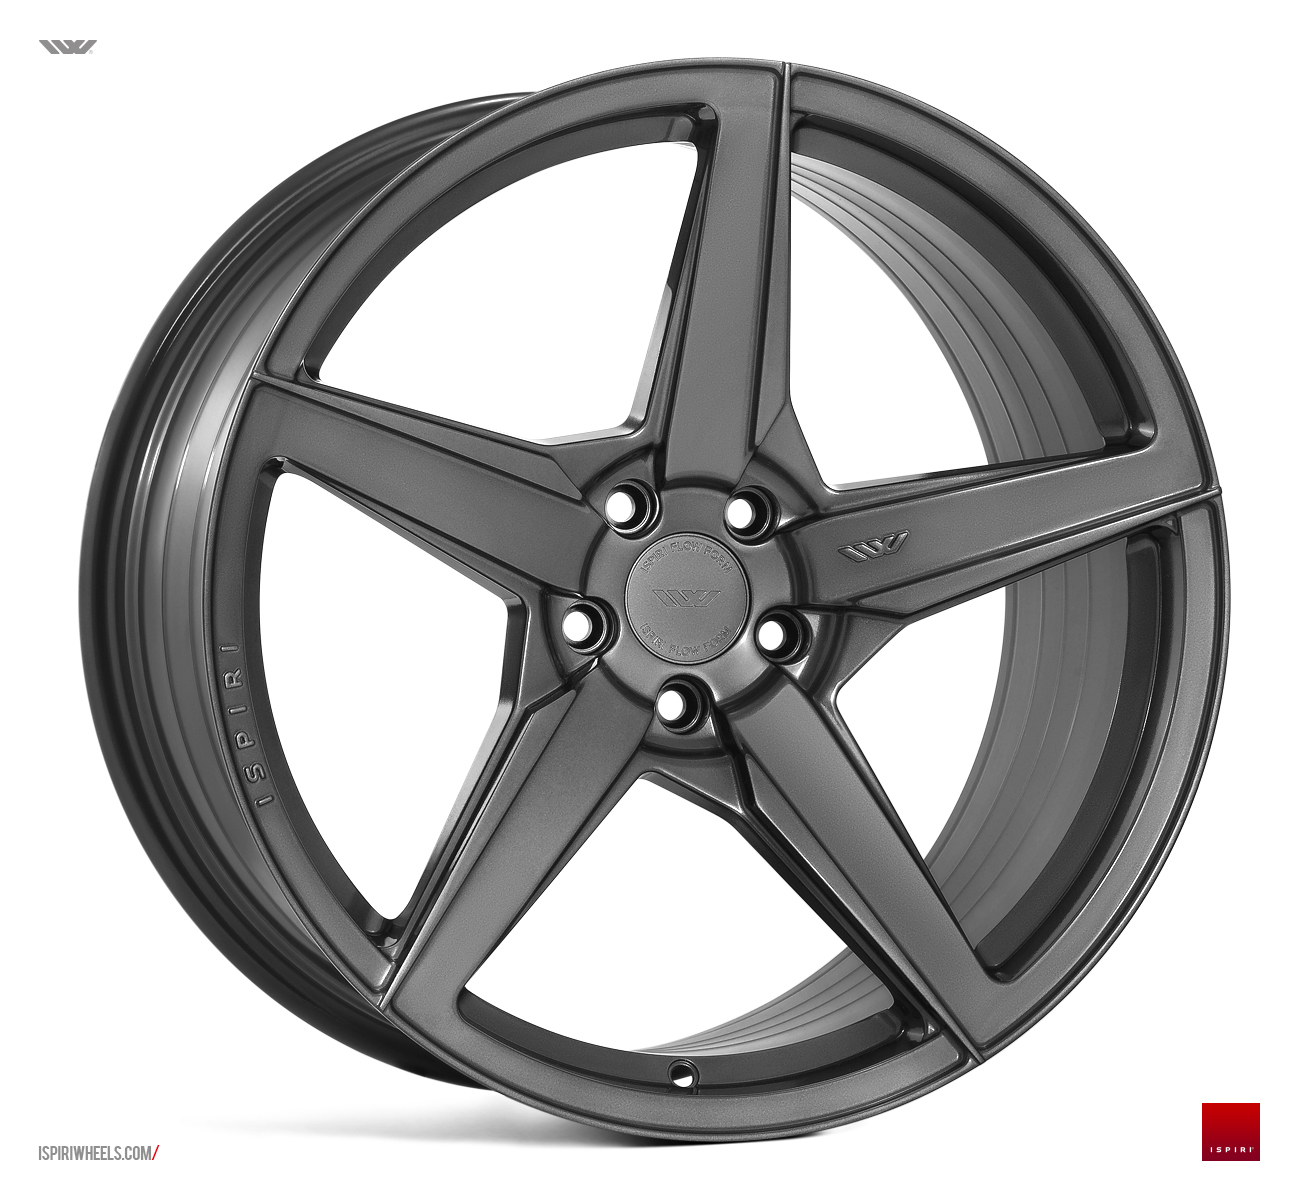 "NEW 20"" ISPIRI FFR5 5 SPOKE ALLOY WHEELS IN CARBON GRAPHITE, WIDER 10"" REAR ET32/45 5X112"